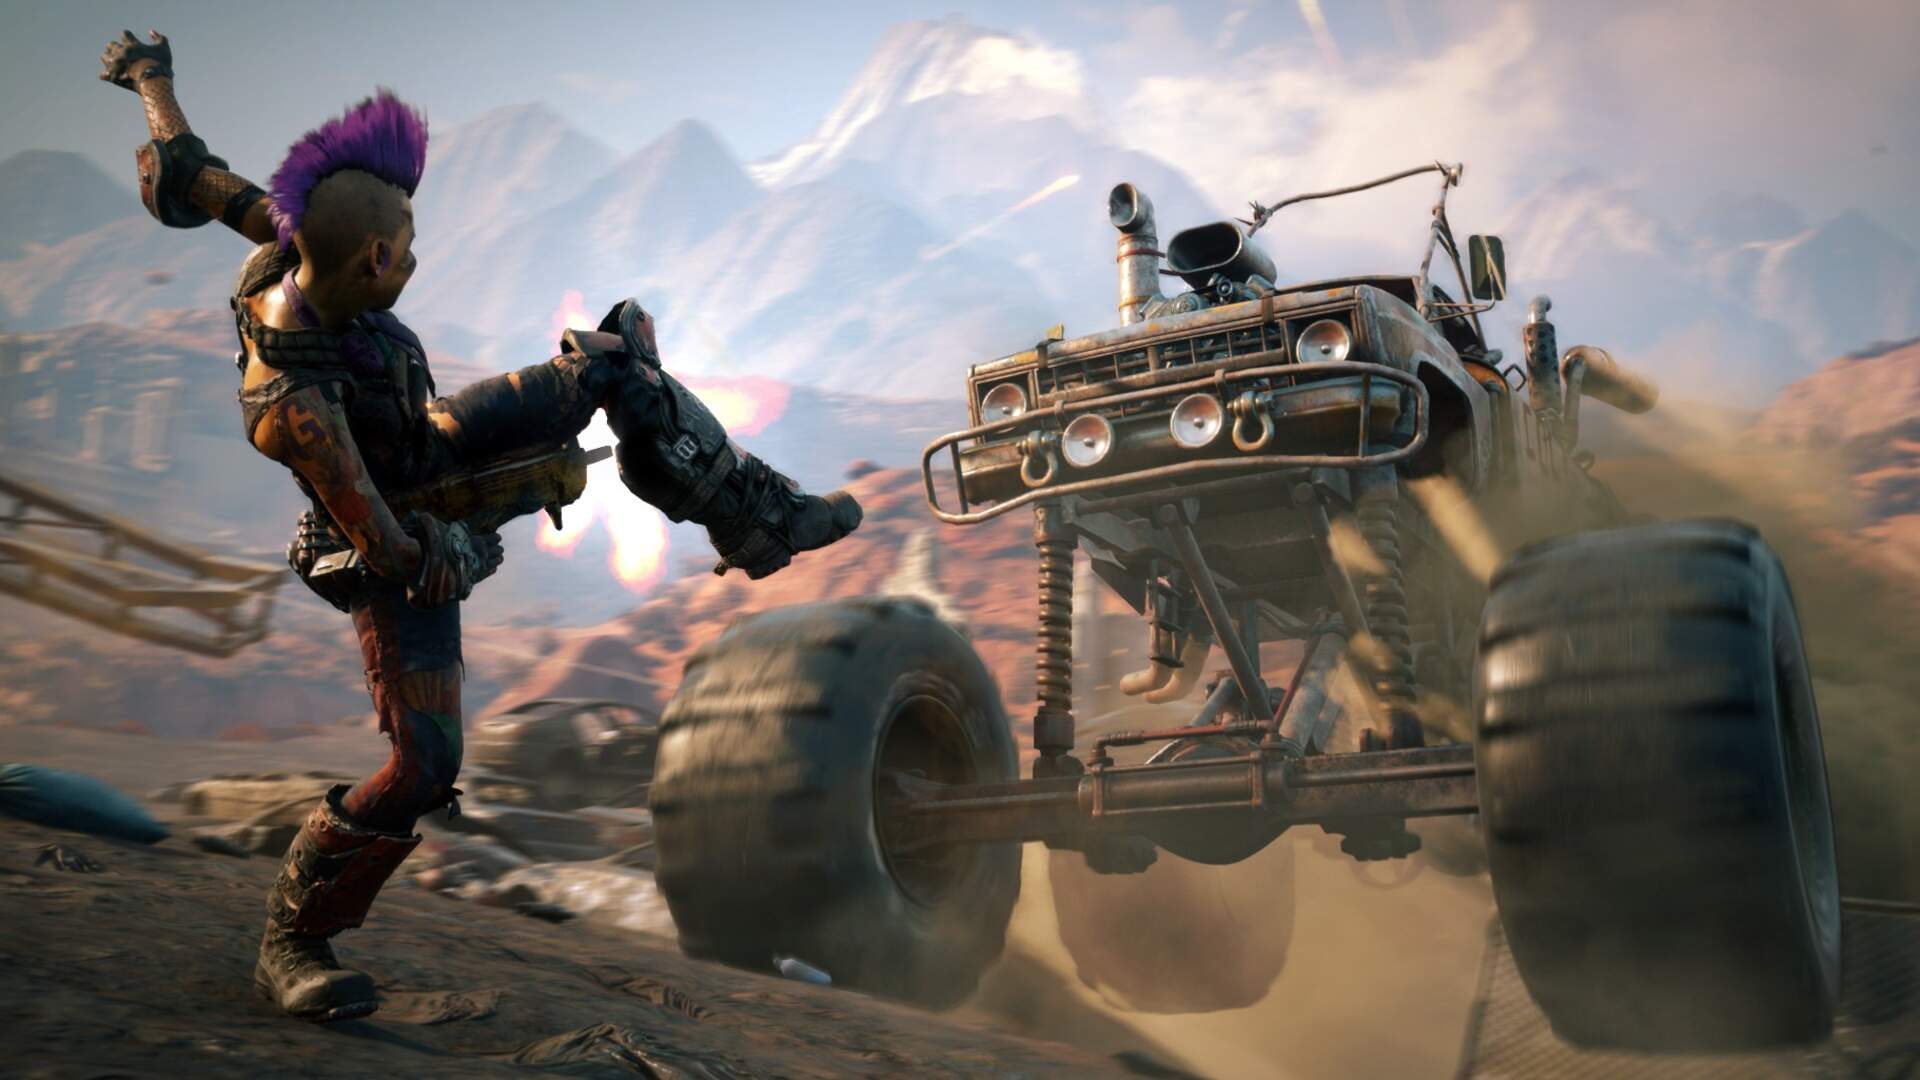 Rage 2's Vehicle Combat Needs Some Tuning, but is Already Producing Wild Gameplay Sequences